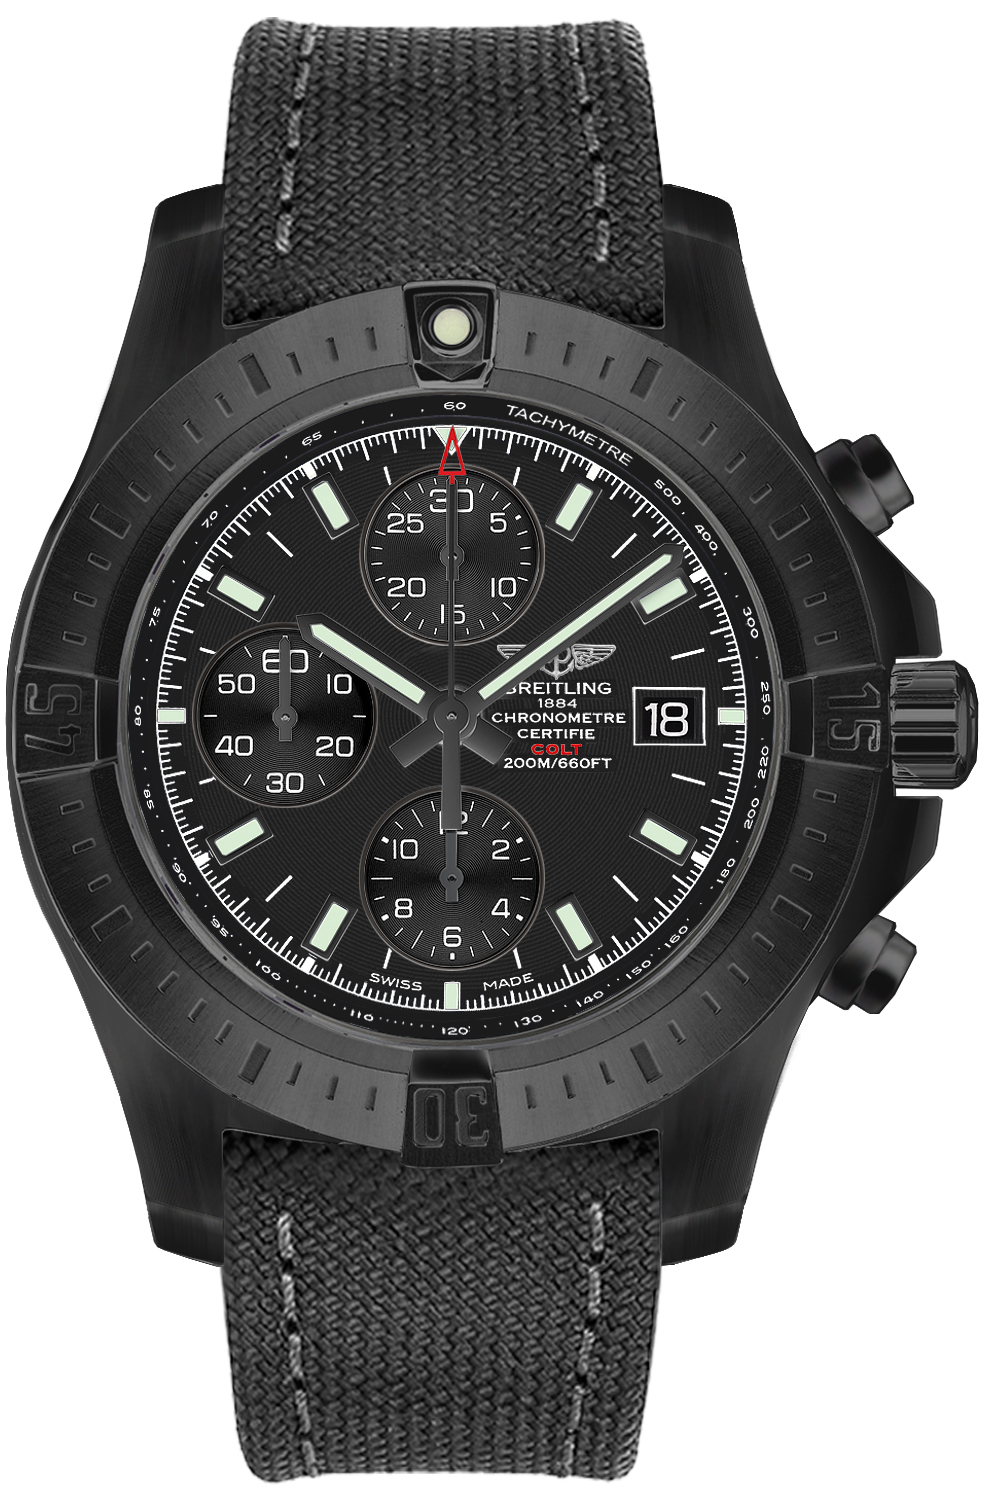 m1338810 bf01 109w breitling colt mens watch. Black Bedroom Furniture Sets. Home Design Ideas